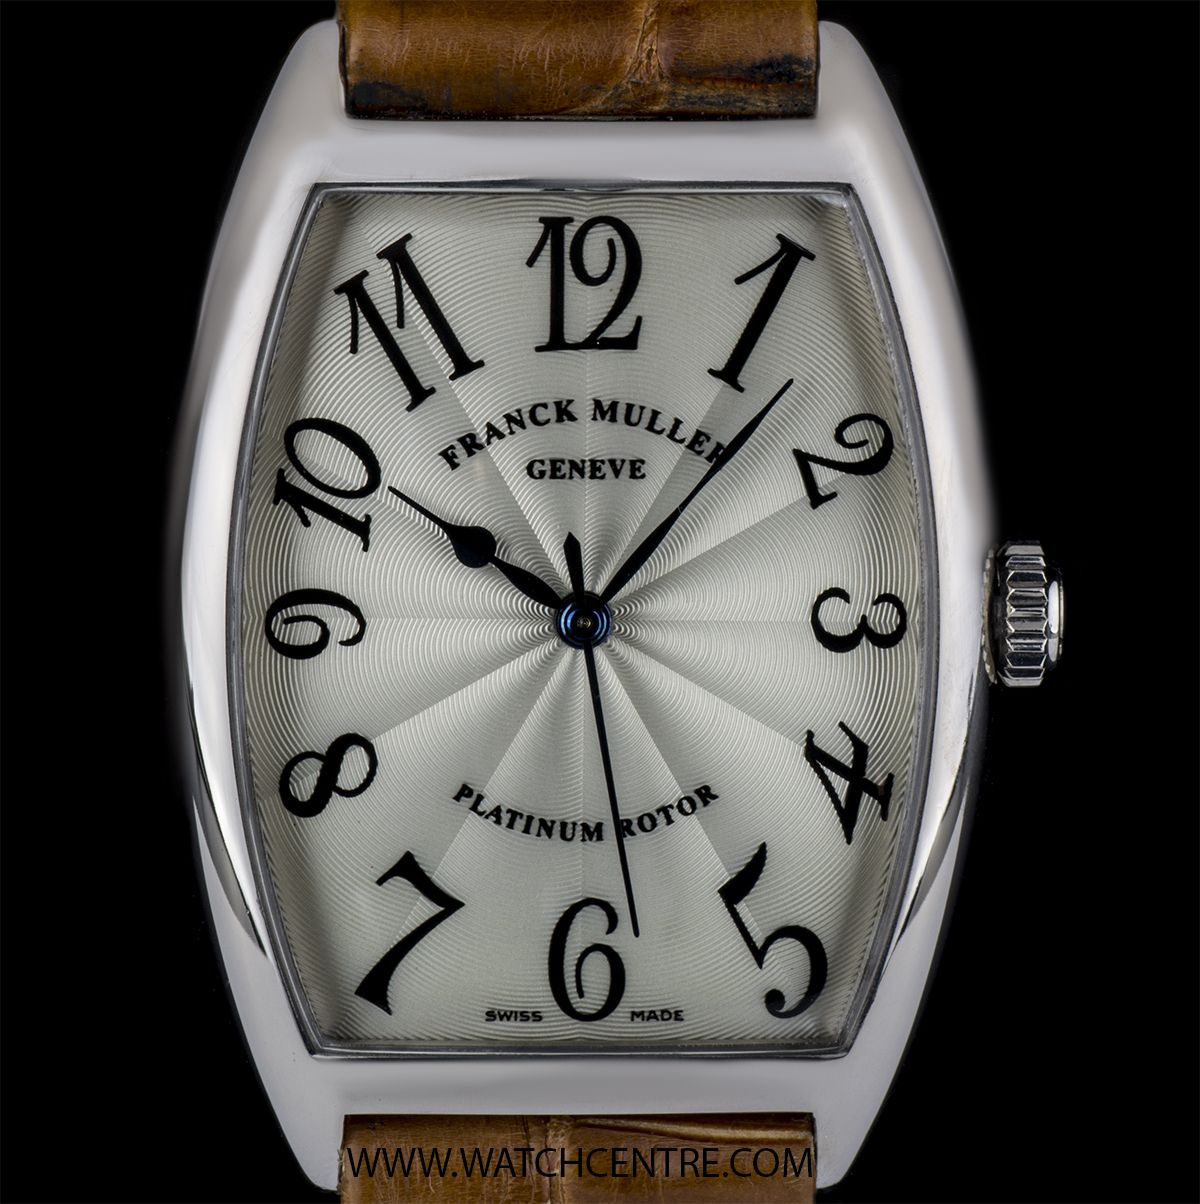 3c903e80 Franck Muller 18k White Gold Cintree Curvex Gents Wristwatch 2852SC  #FranckMuller #WhiteGold #Timepiece #Luxury #WatchCentre #NewBondStreet  #Mayfair #London